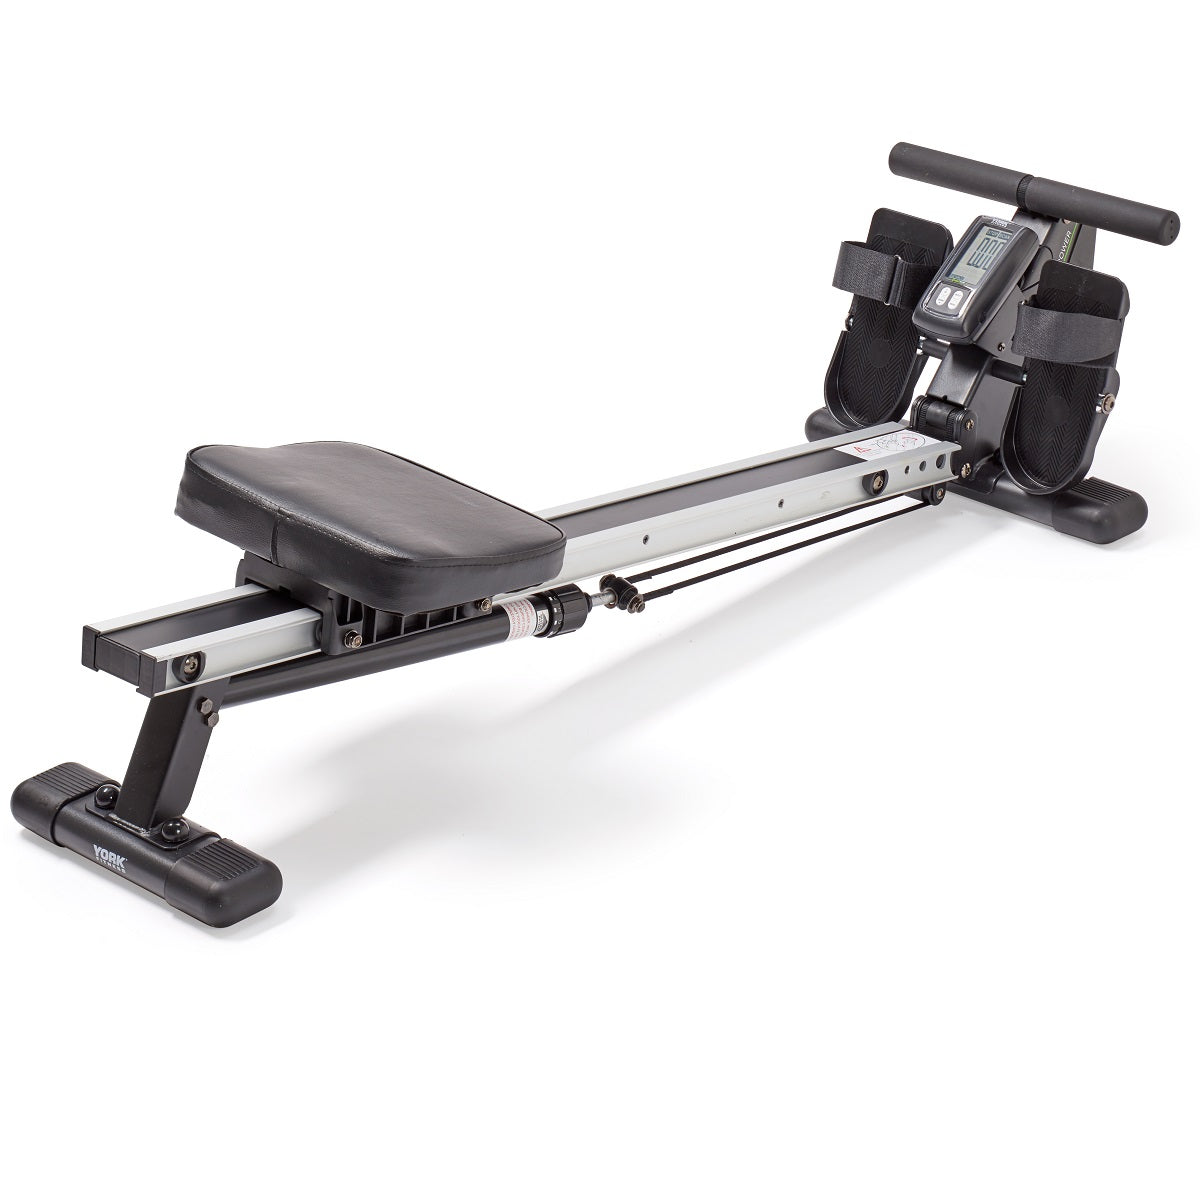 york r700 rowing machine instructions